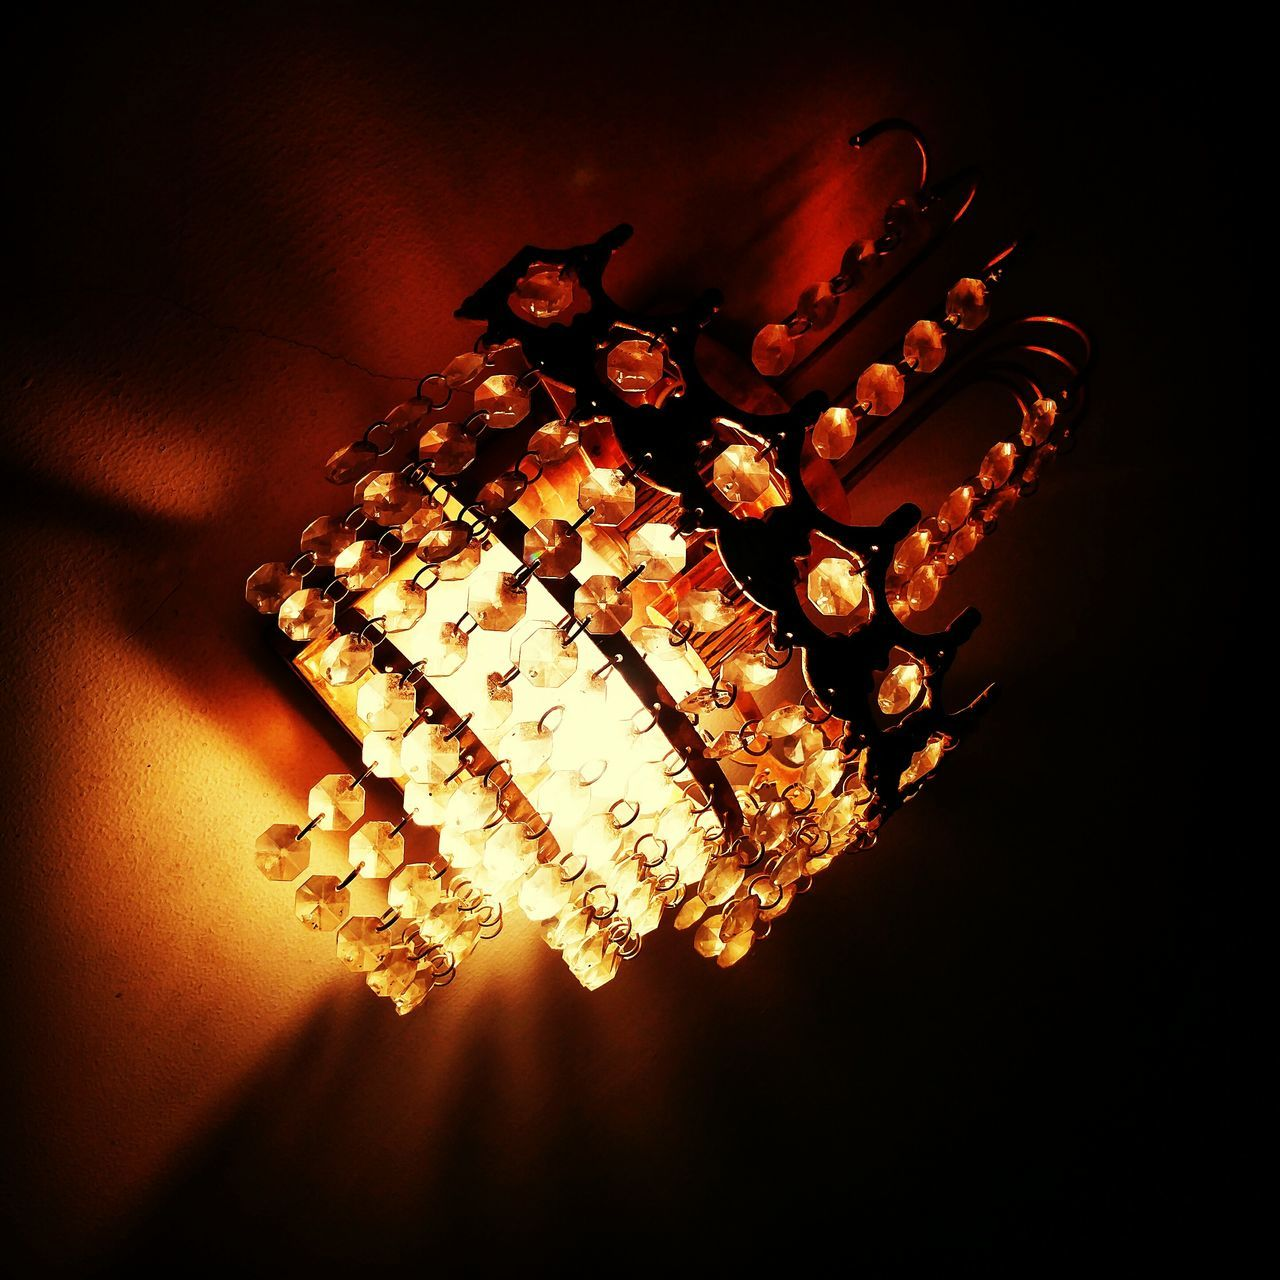 Low Angle View Of Illuminated Lighting Equipment In Room